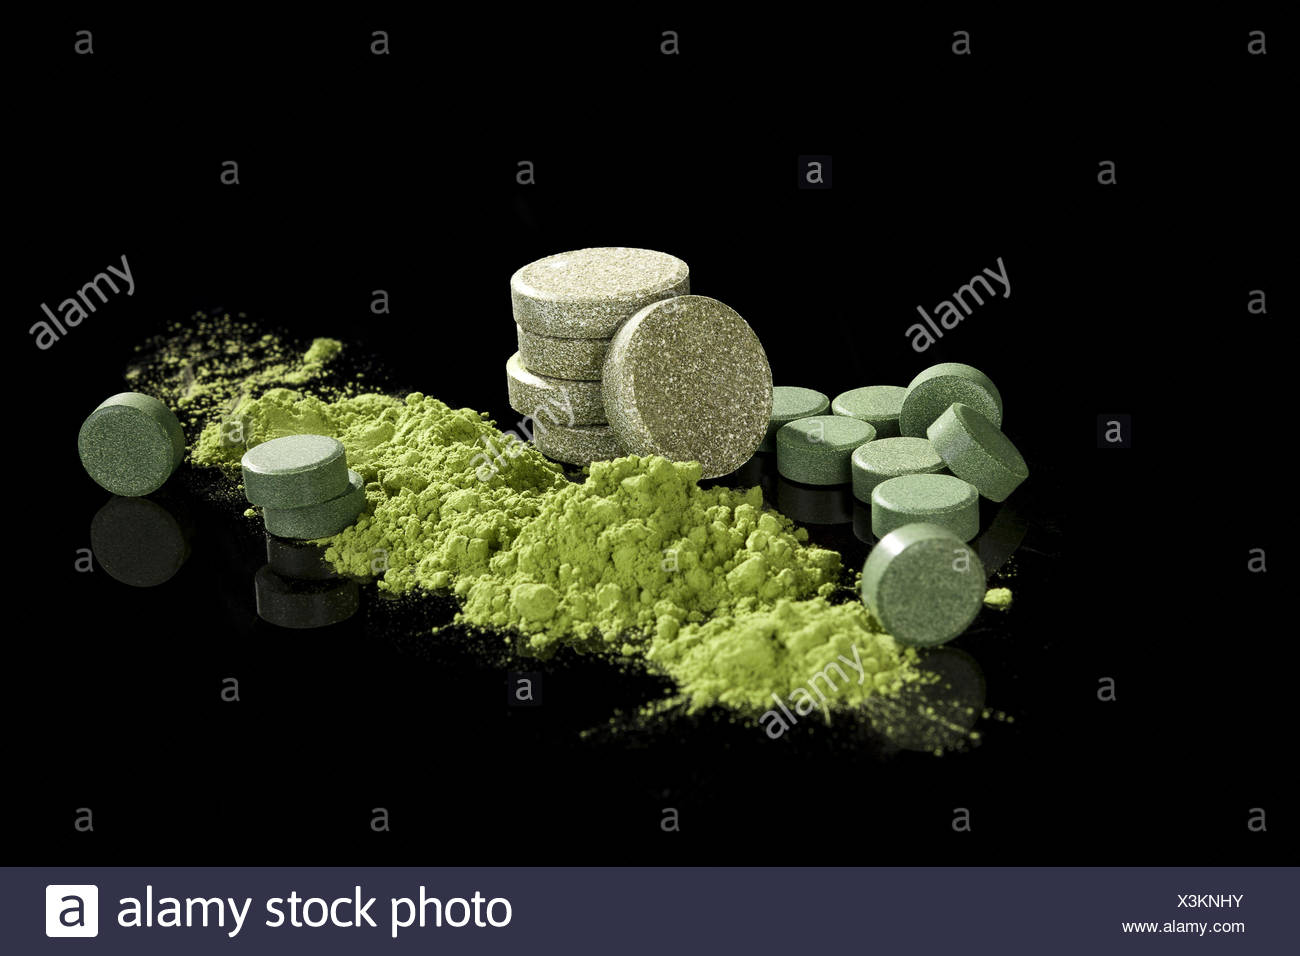 Green dietary supplements. - Stock Image